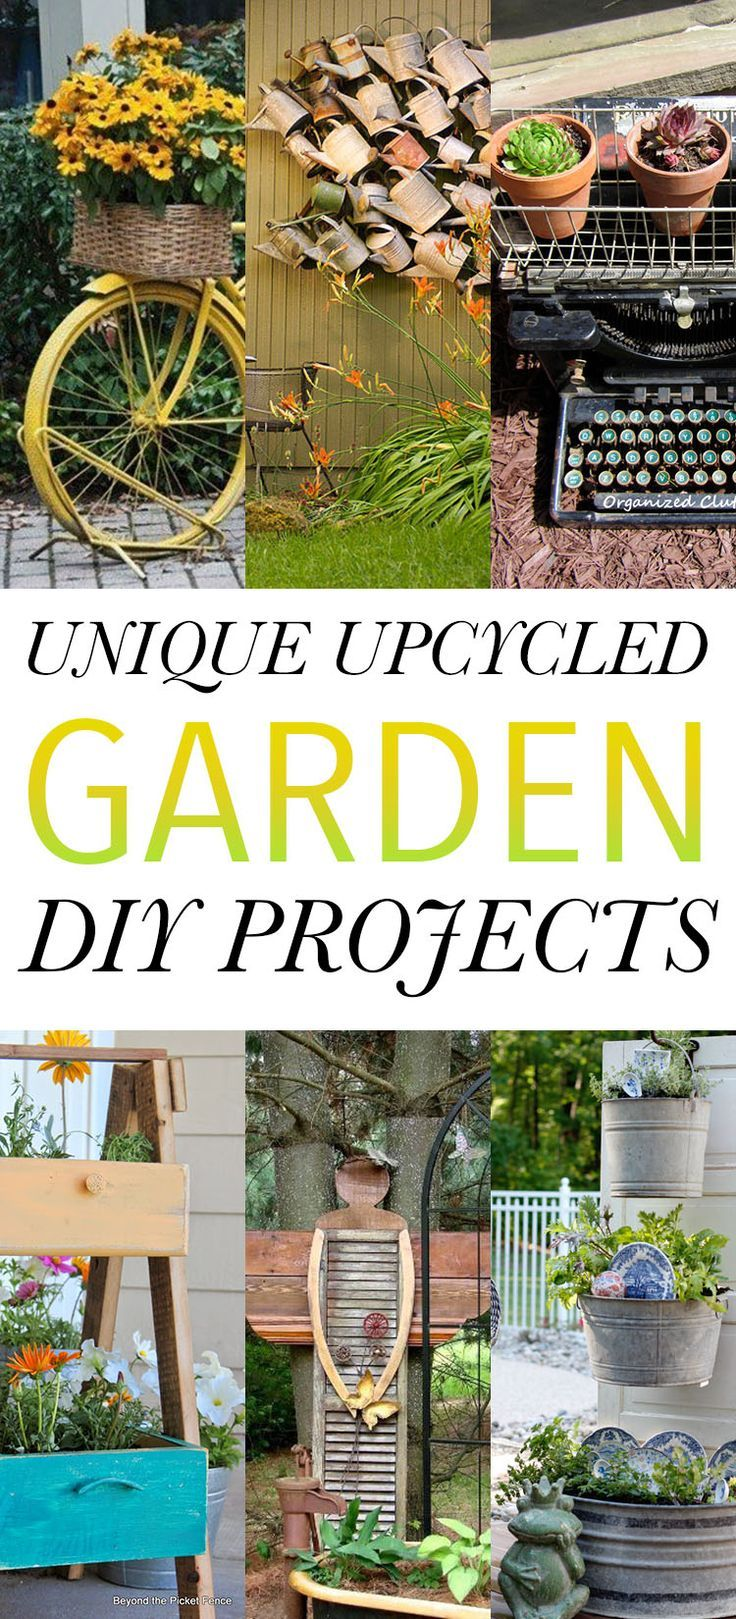 17 best images about garden on pinterest gardens raised for Best upcycled projects